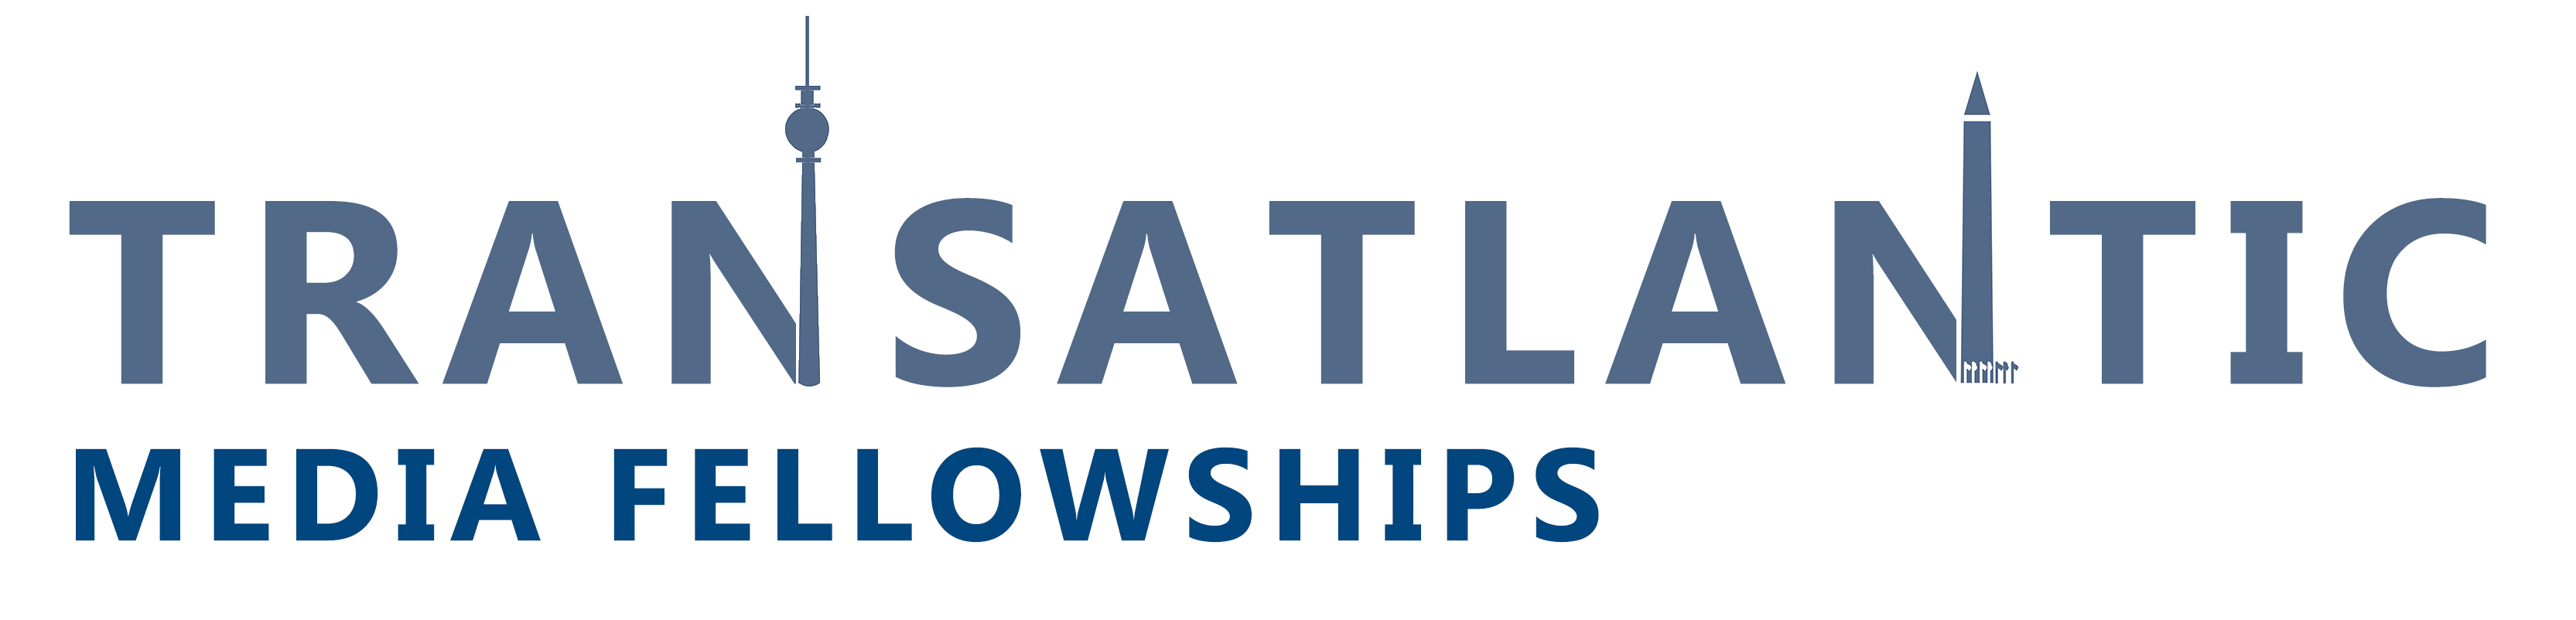 Transatlantic Media Fellowships